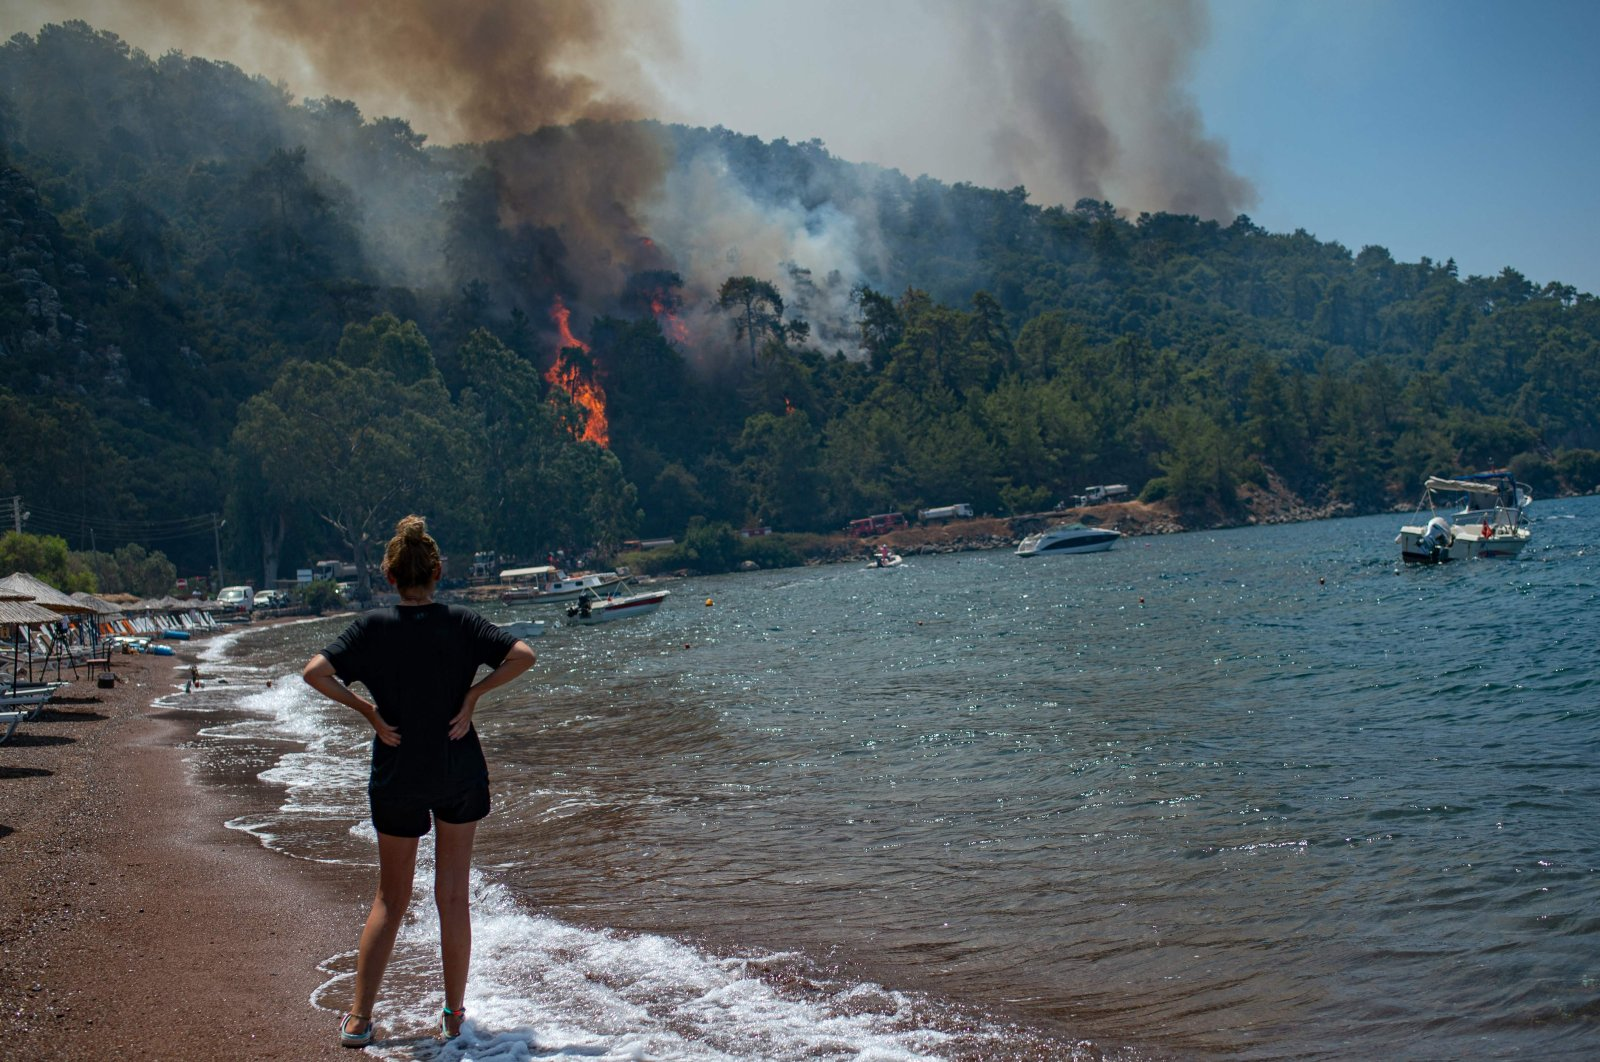 A woman watches the forest burning from a beach in Muğla, Turkey, on Aug. 3, 2021. (AFP Photo)